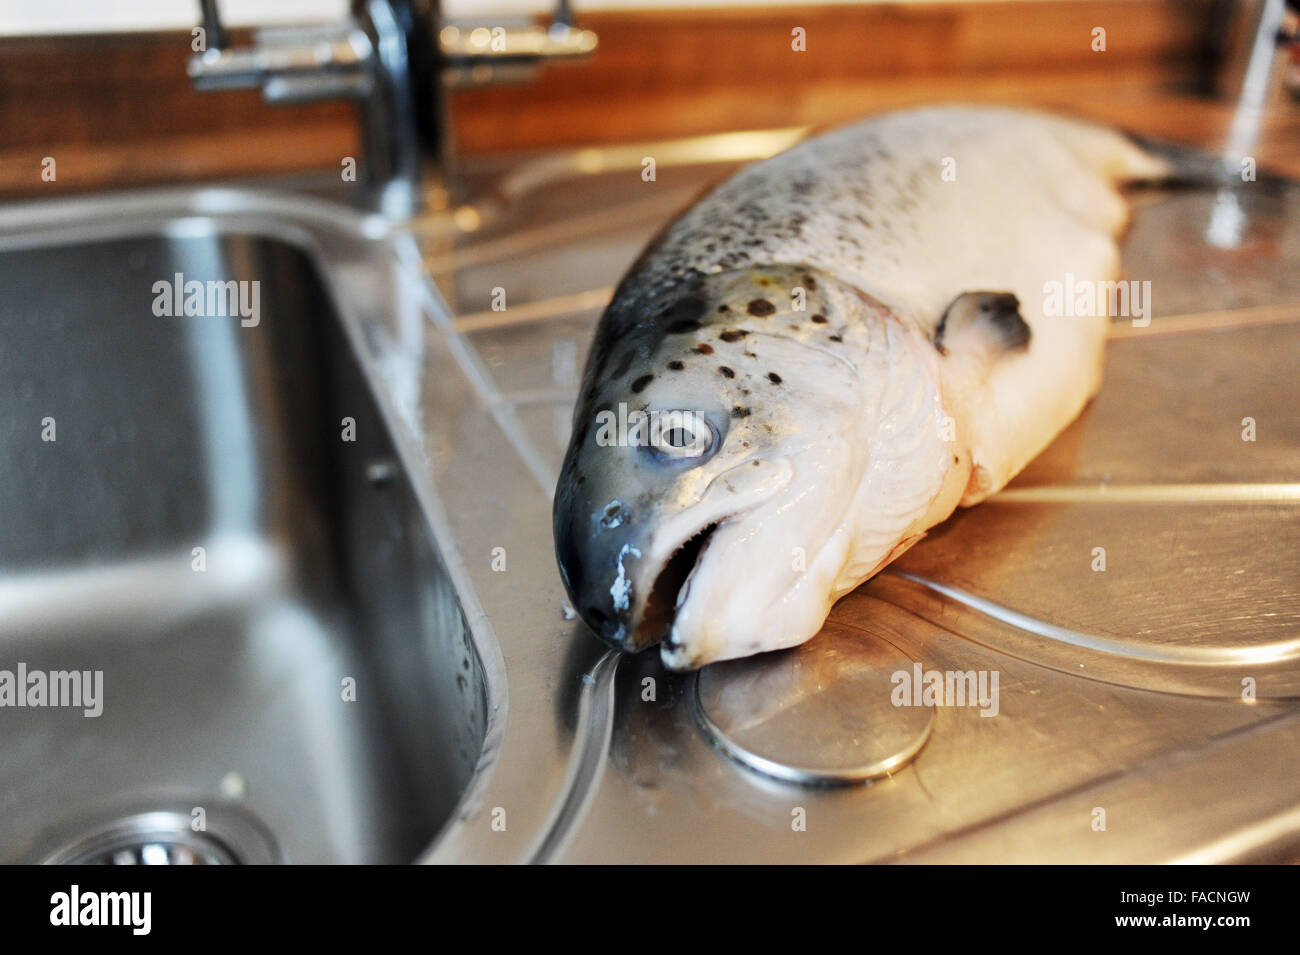 Whole salmon being prepared for cooking at kitchen sink stock photo whole salmon being prepared for cooking at kitchen sink workwithnaturefo